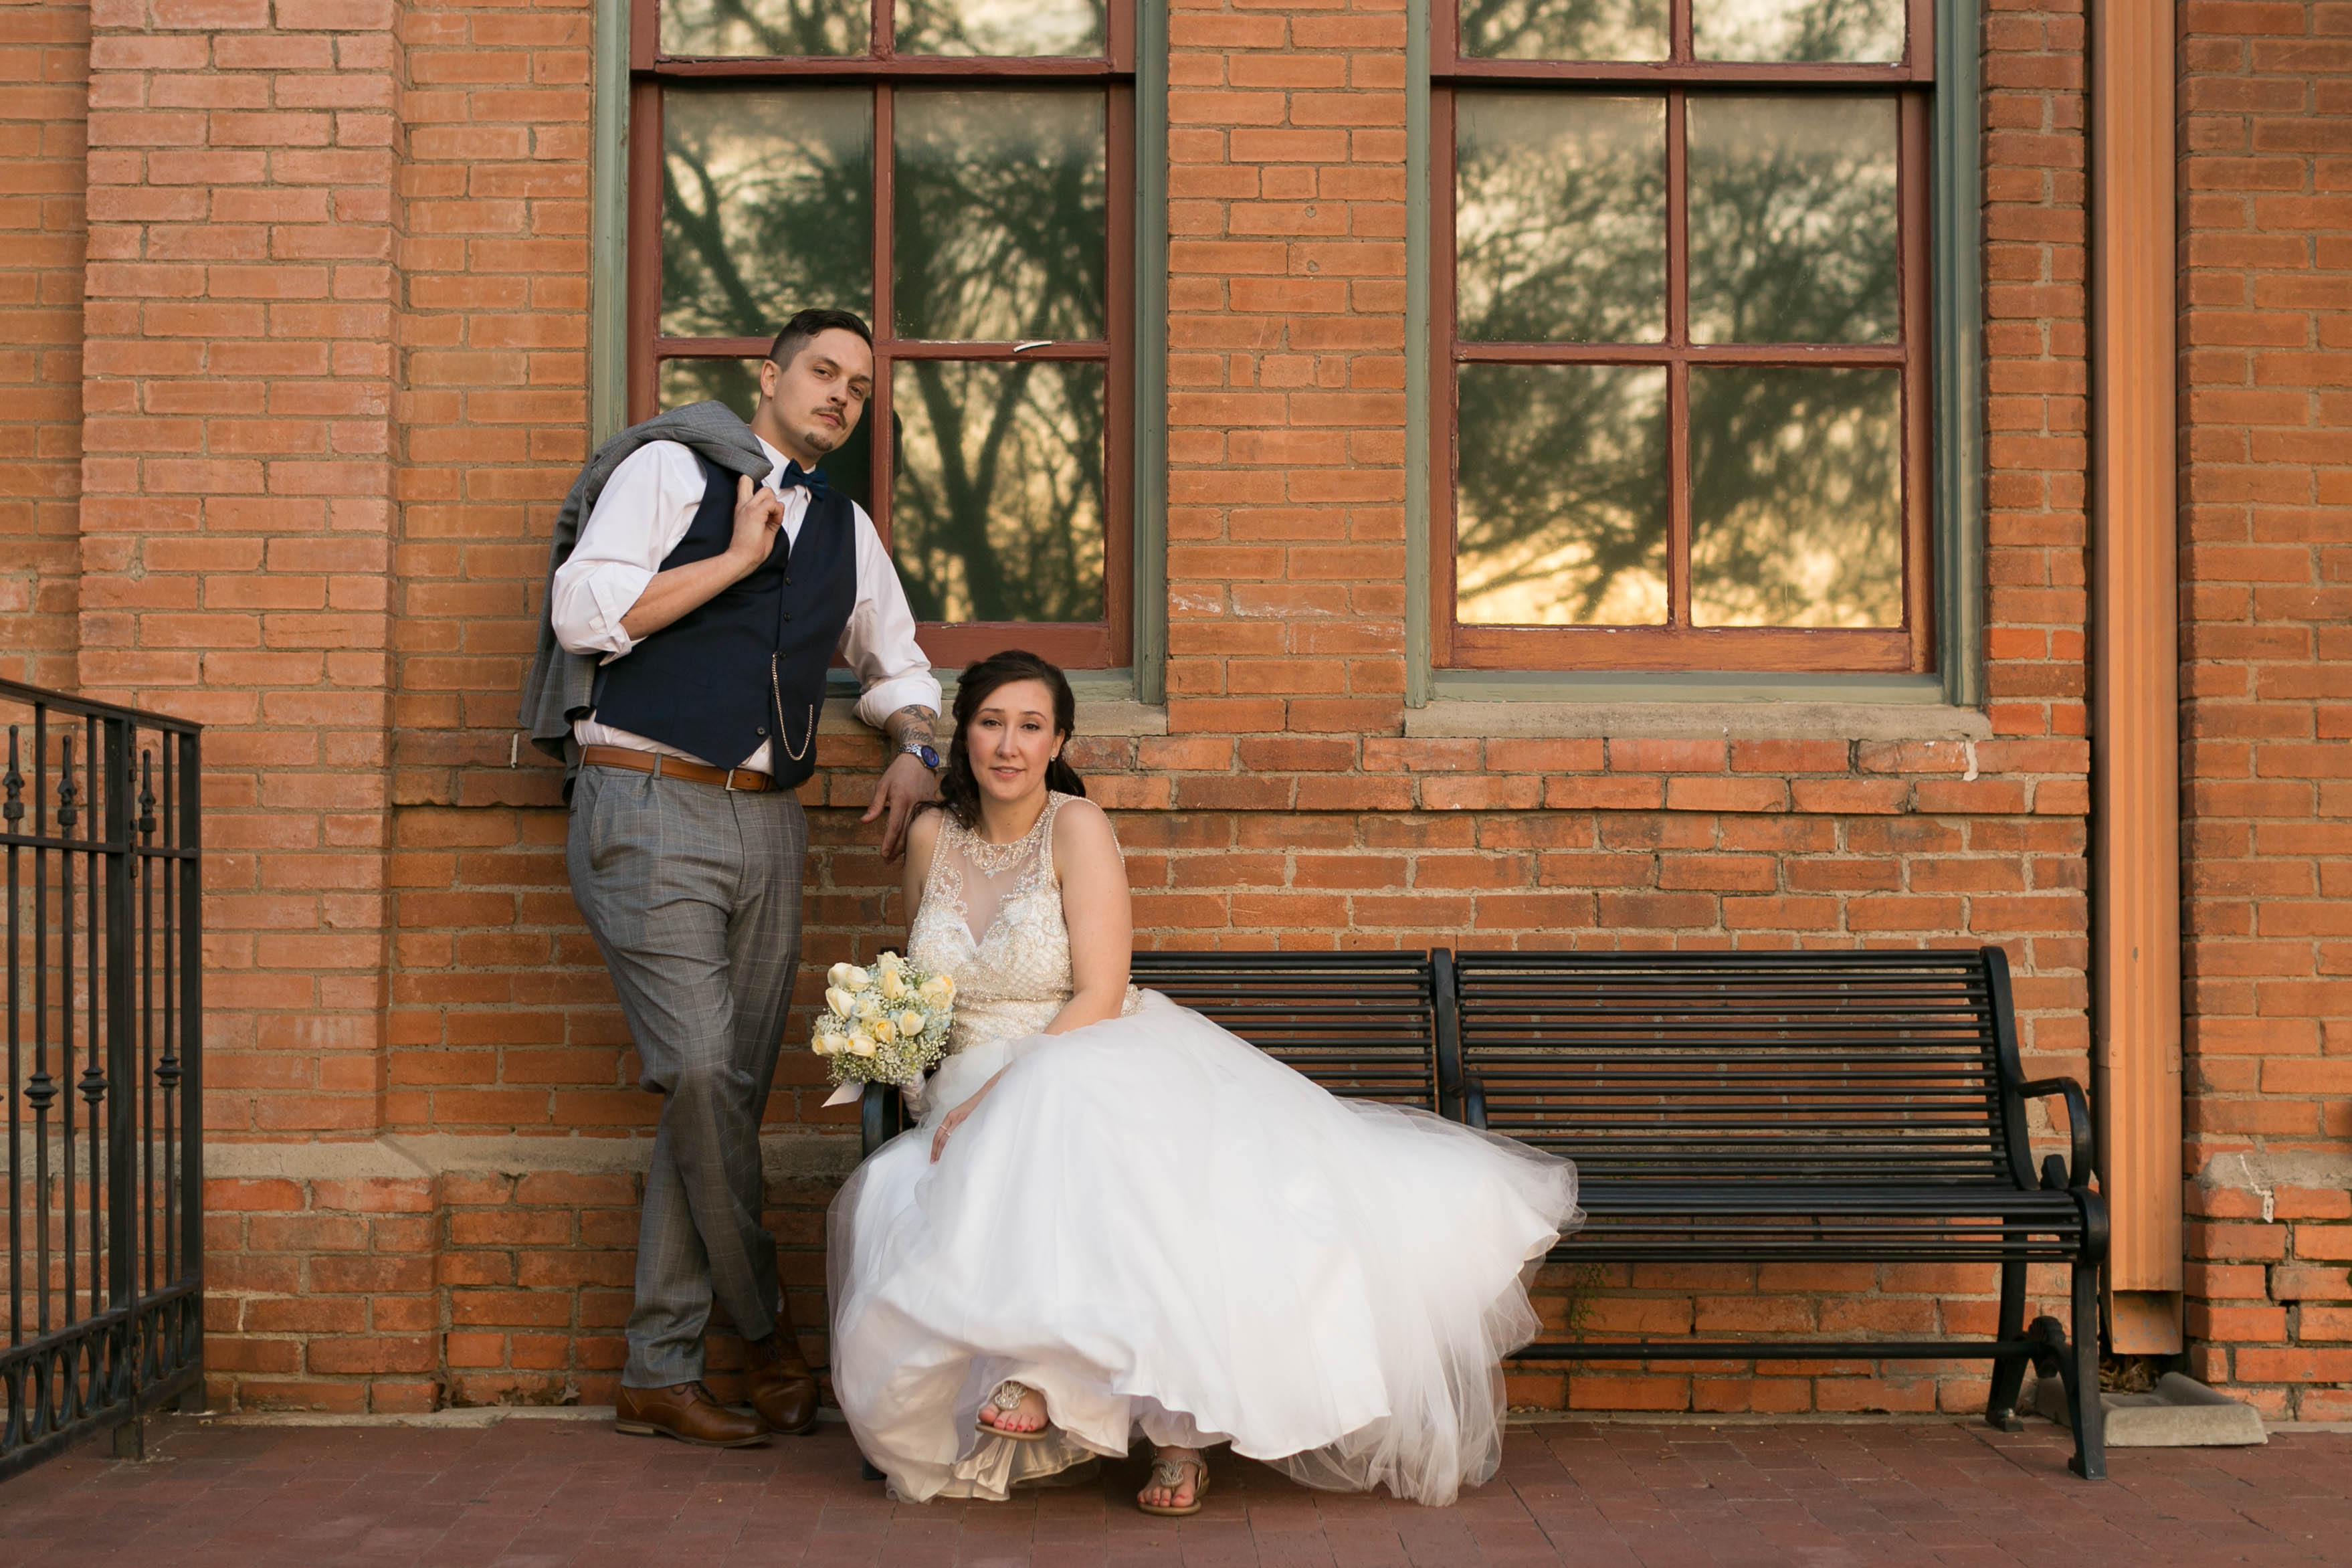 5 Easy Poses for Wedding Couples